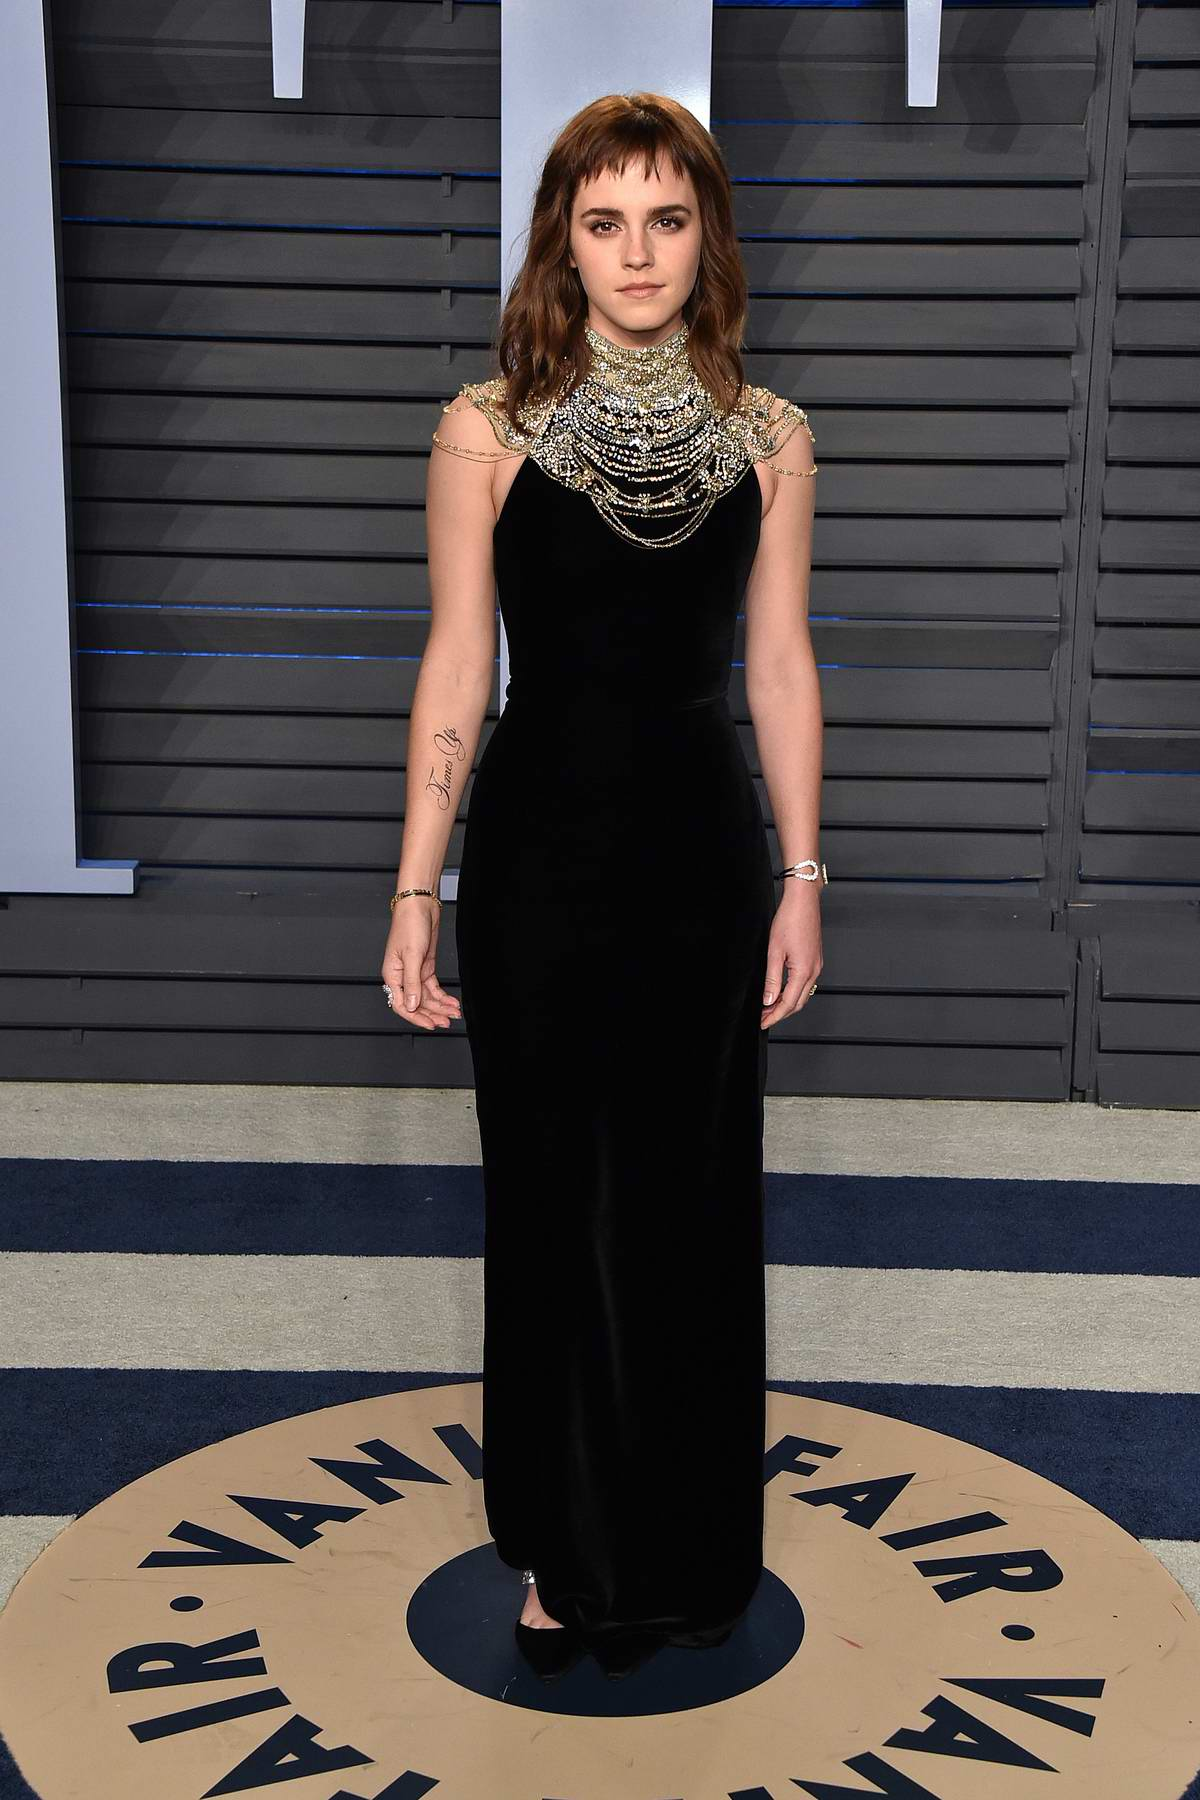 Emma Watson attends 2018 Vanity Fair Oscar Party at the Wallis Annenberg Center for the Performing Arts in Beverly Hills, Los Angeles